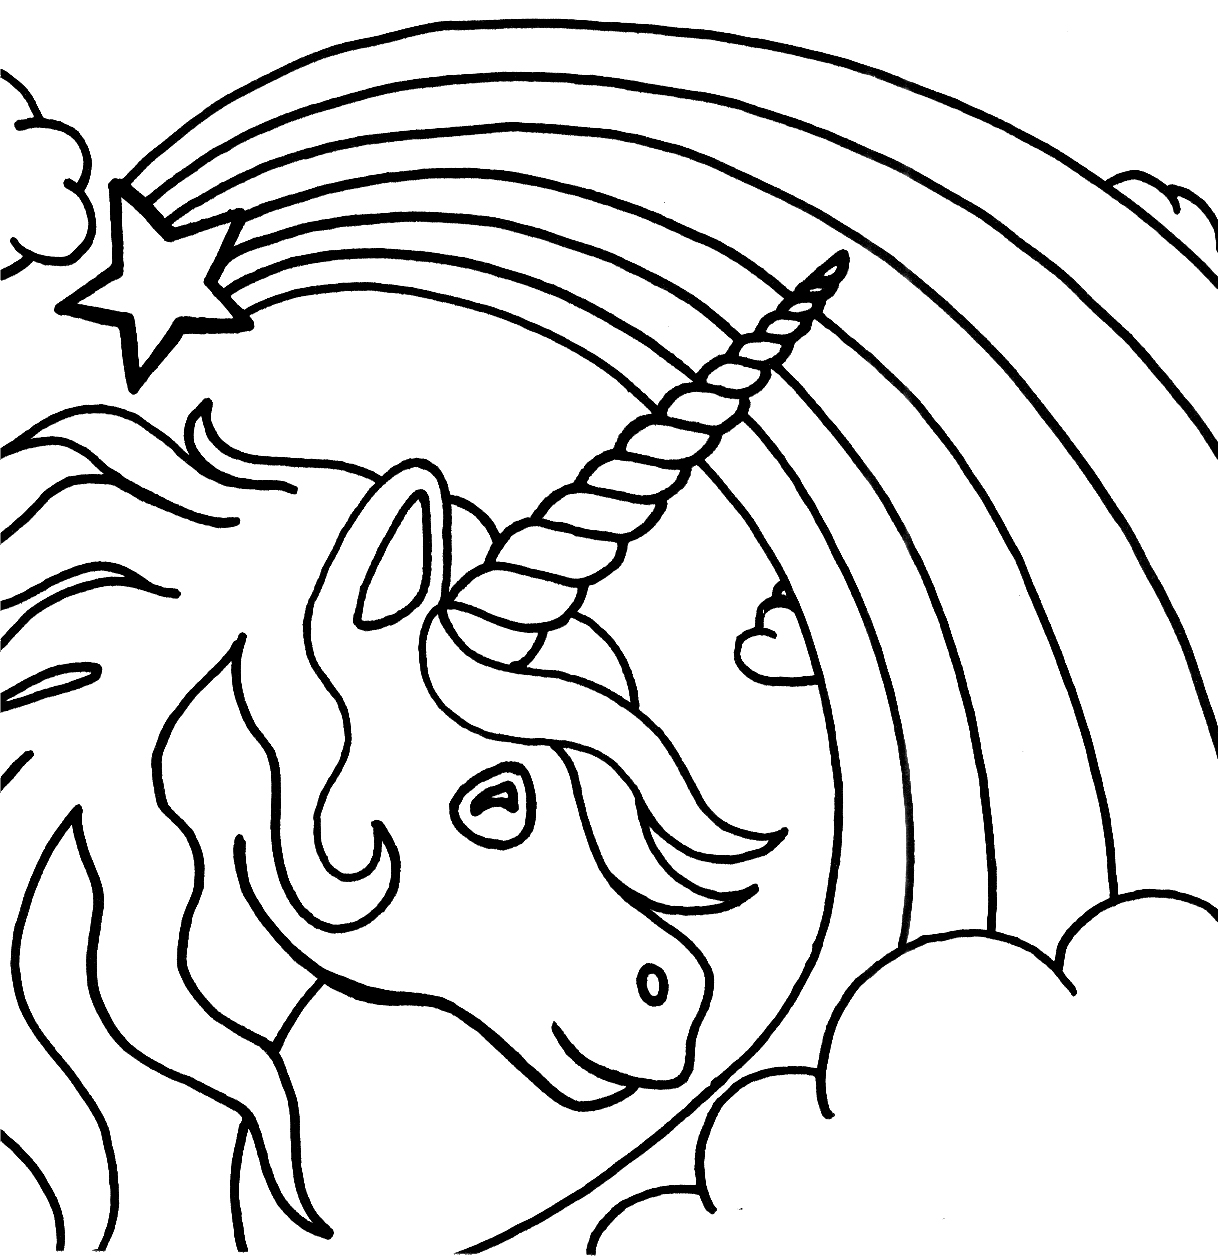 unicorn coloring pages for kids - Kids Color Sheet